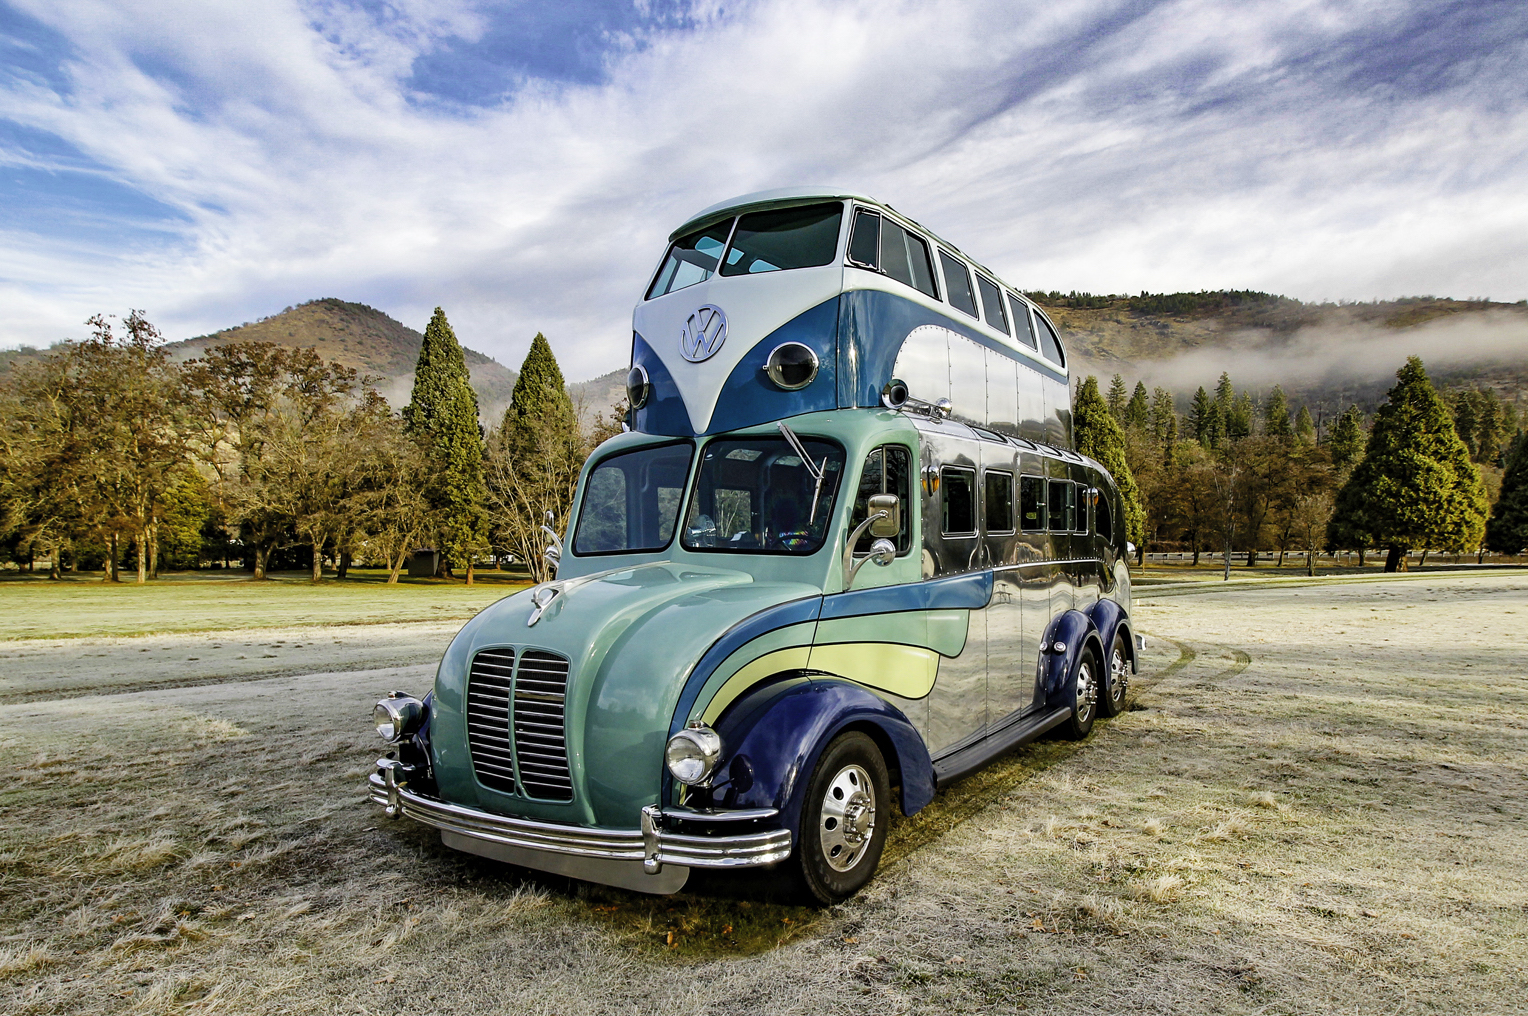 Double decker VW camper sits atop art deco-inspired 'Magic Bus'